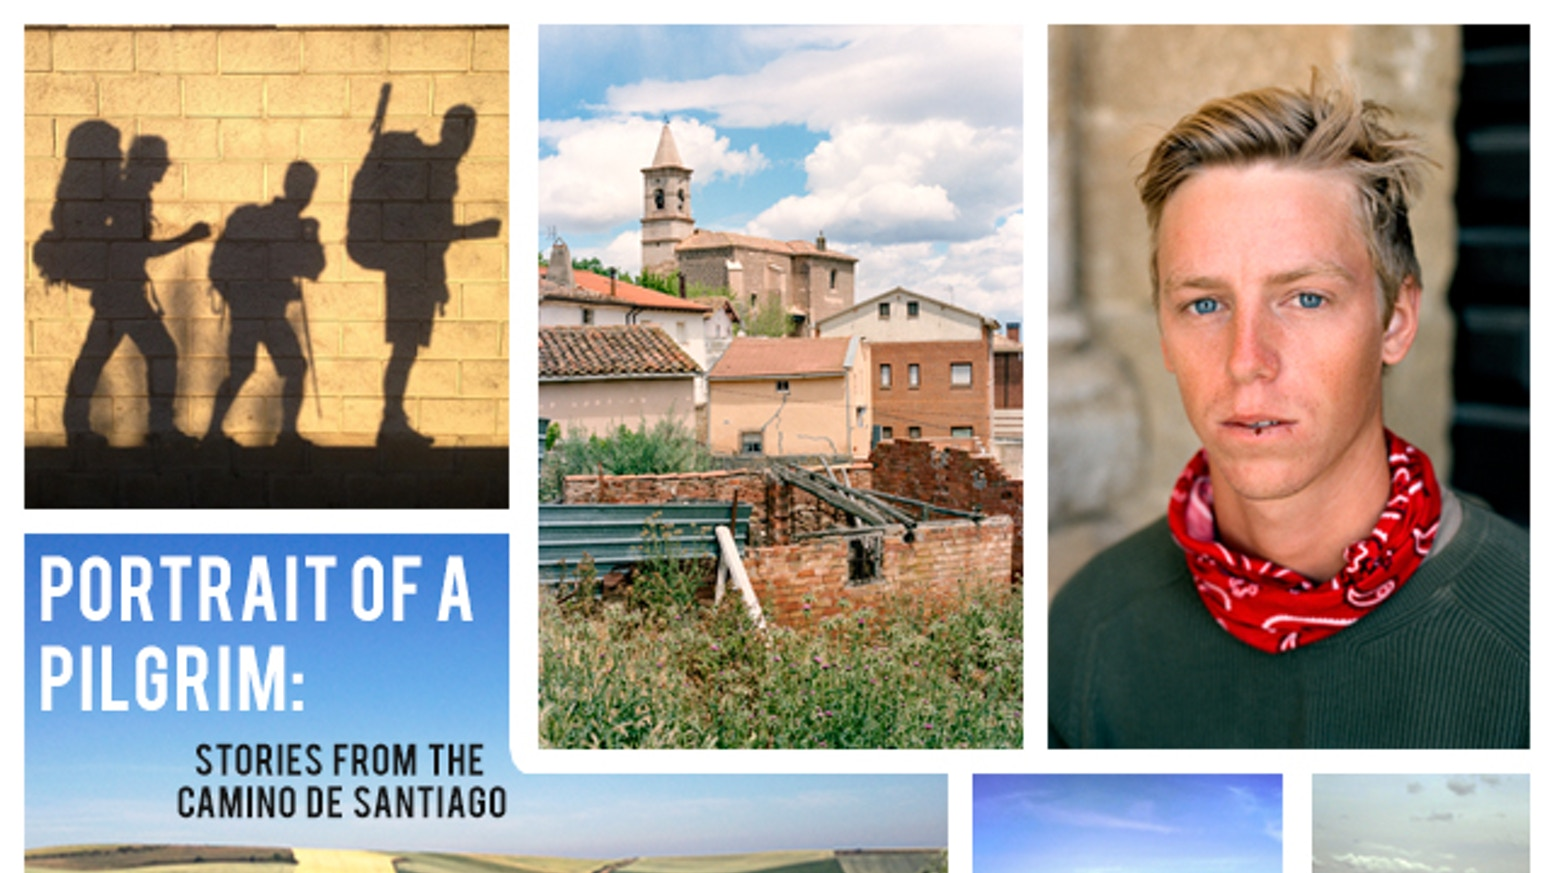 A photographic/multimedia documentary and book sharing the stories of pilgrims and the villages along the Camino de Santiago.